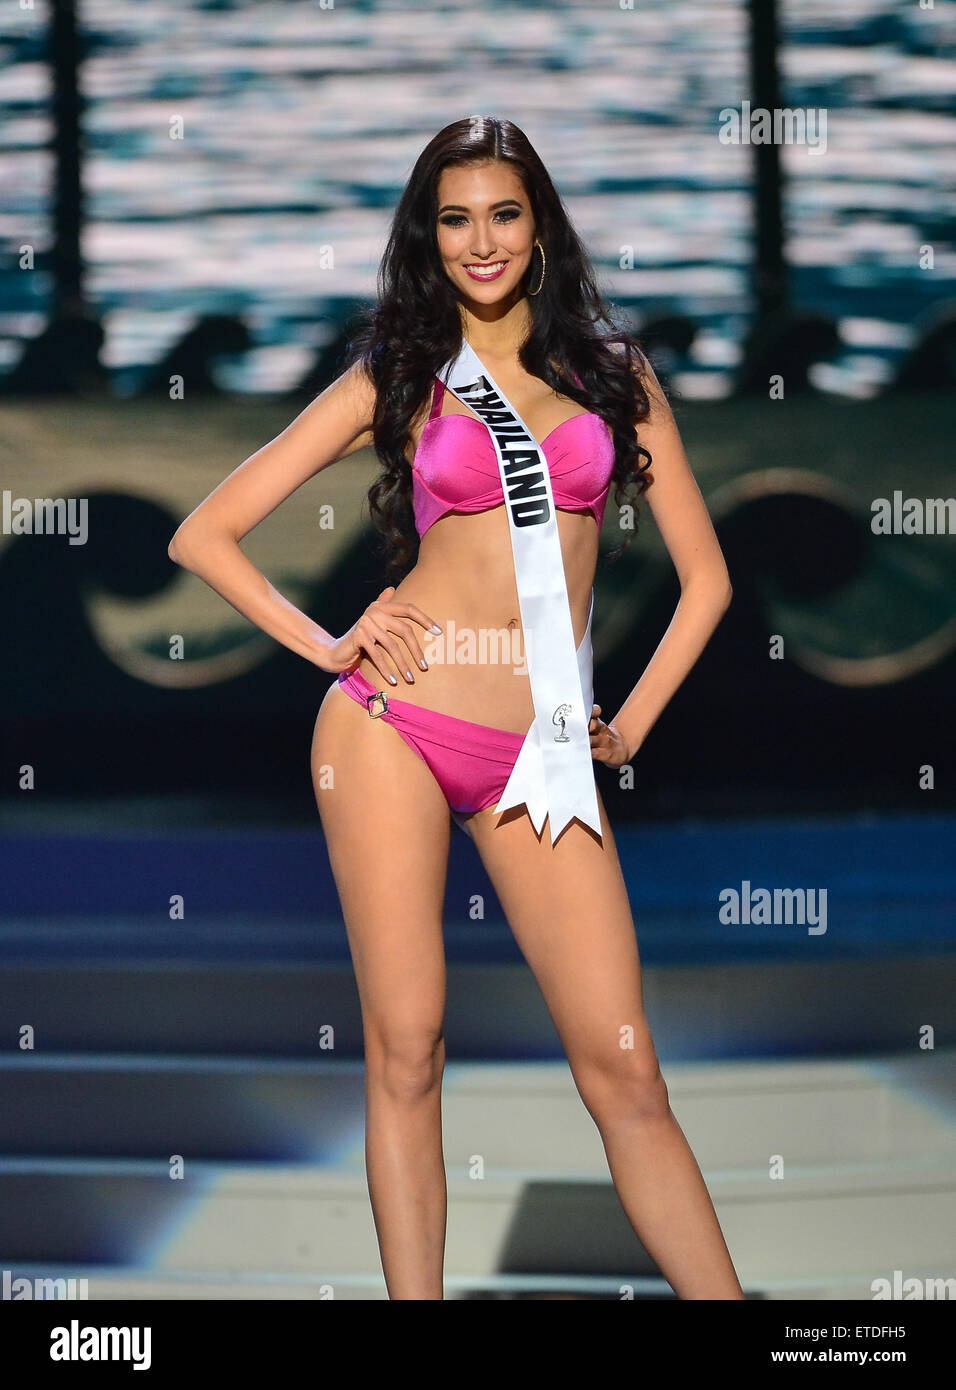 63rd-annual-miss-universe-pageant-prelim